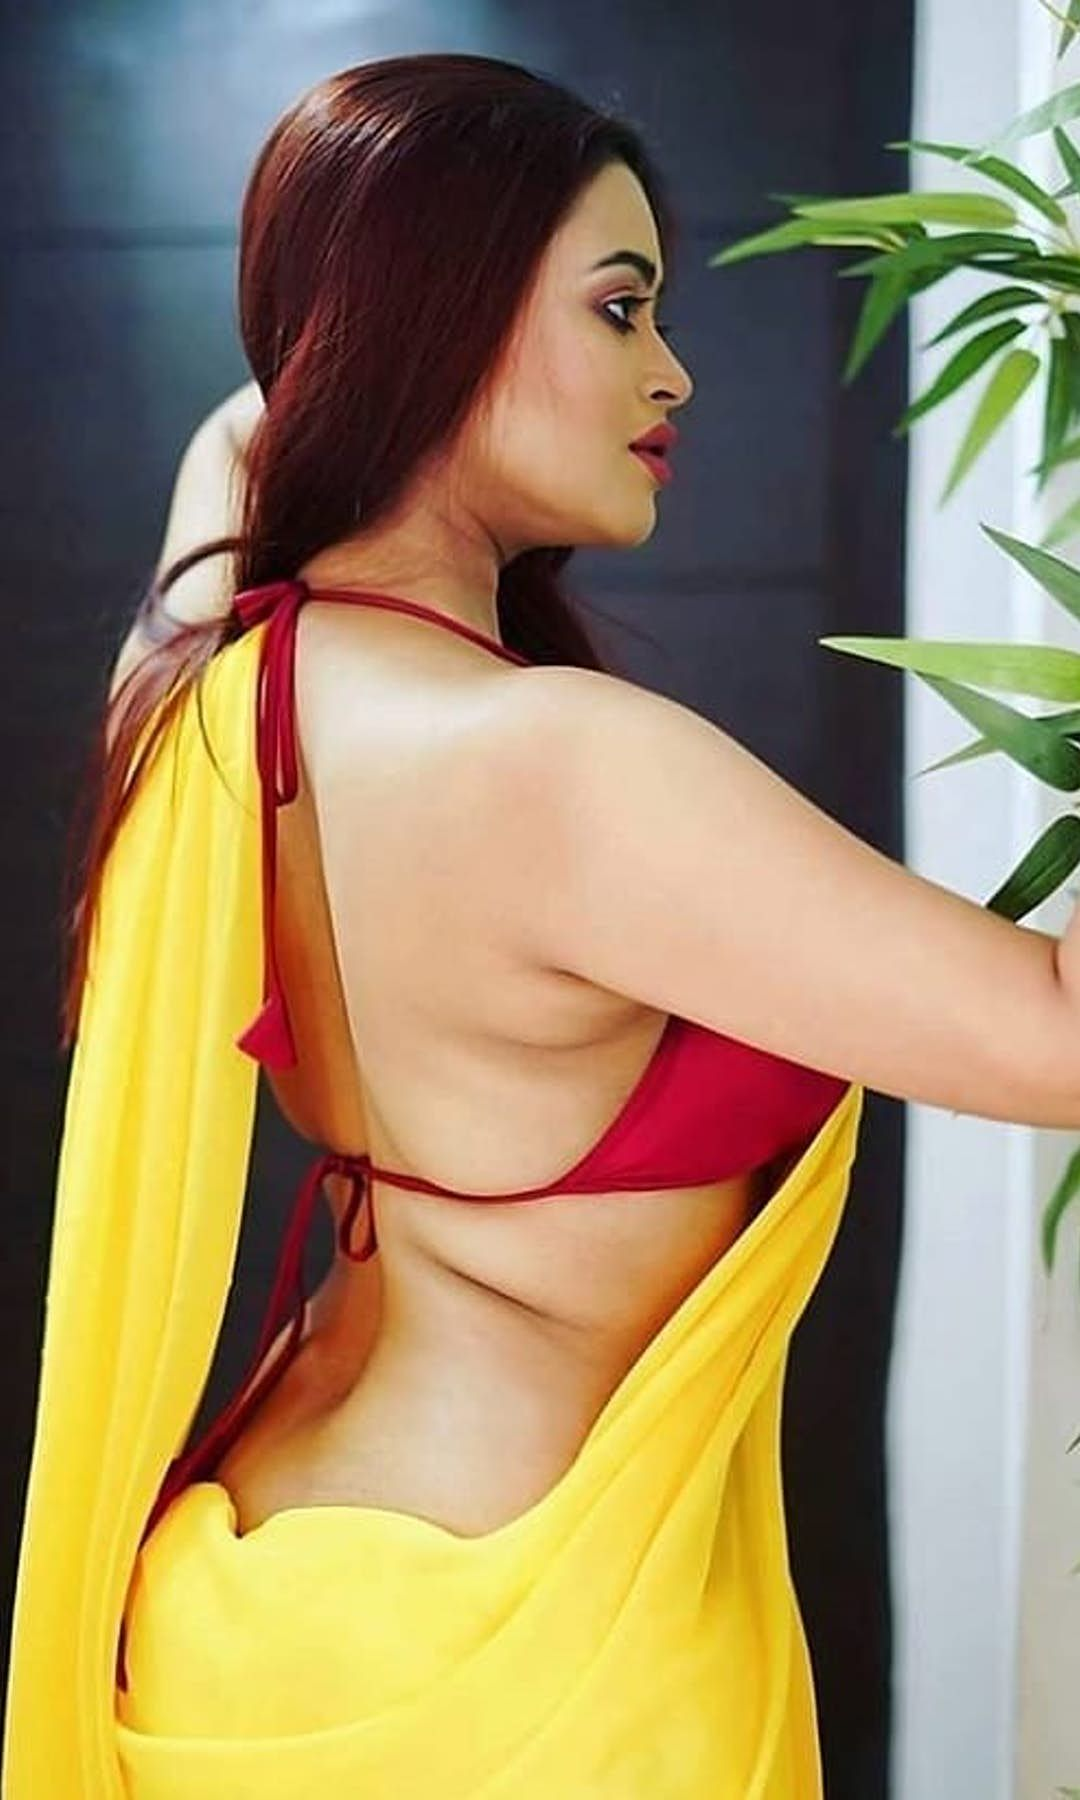 Sare hot madchen sexy indian